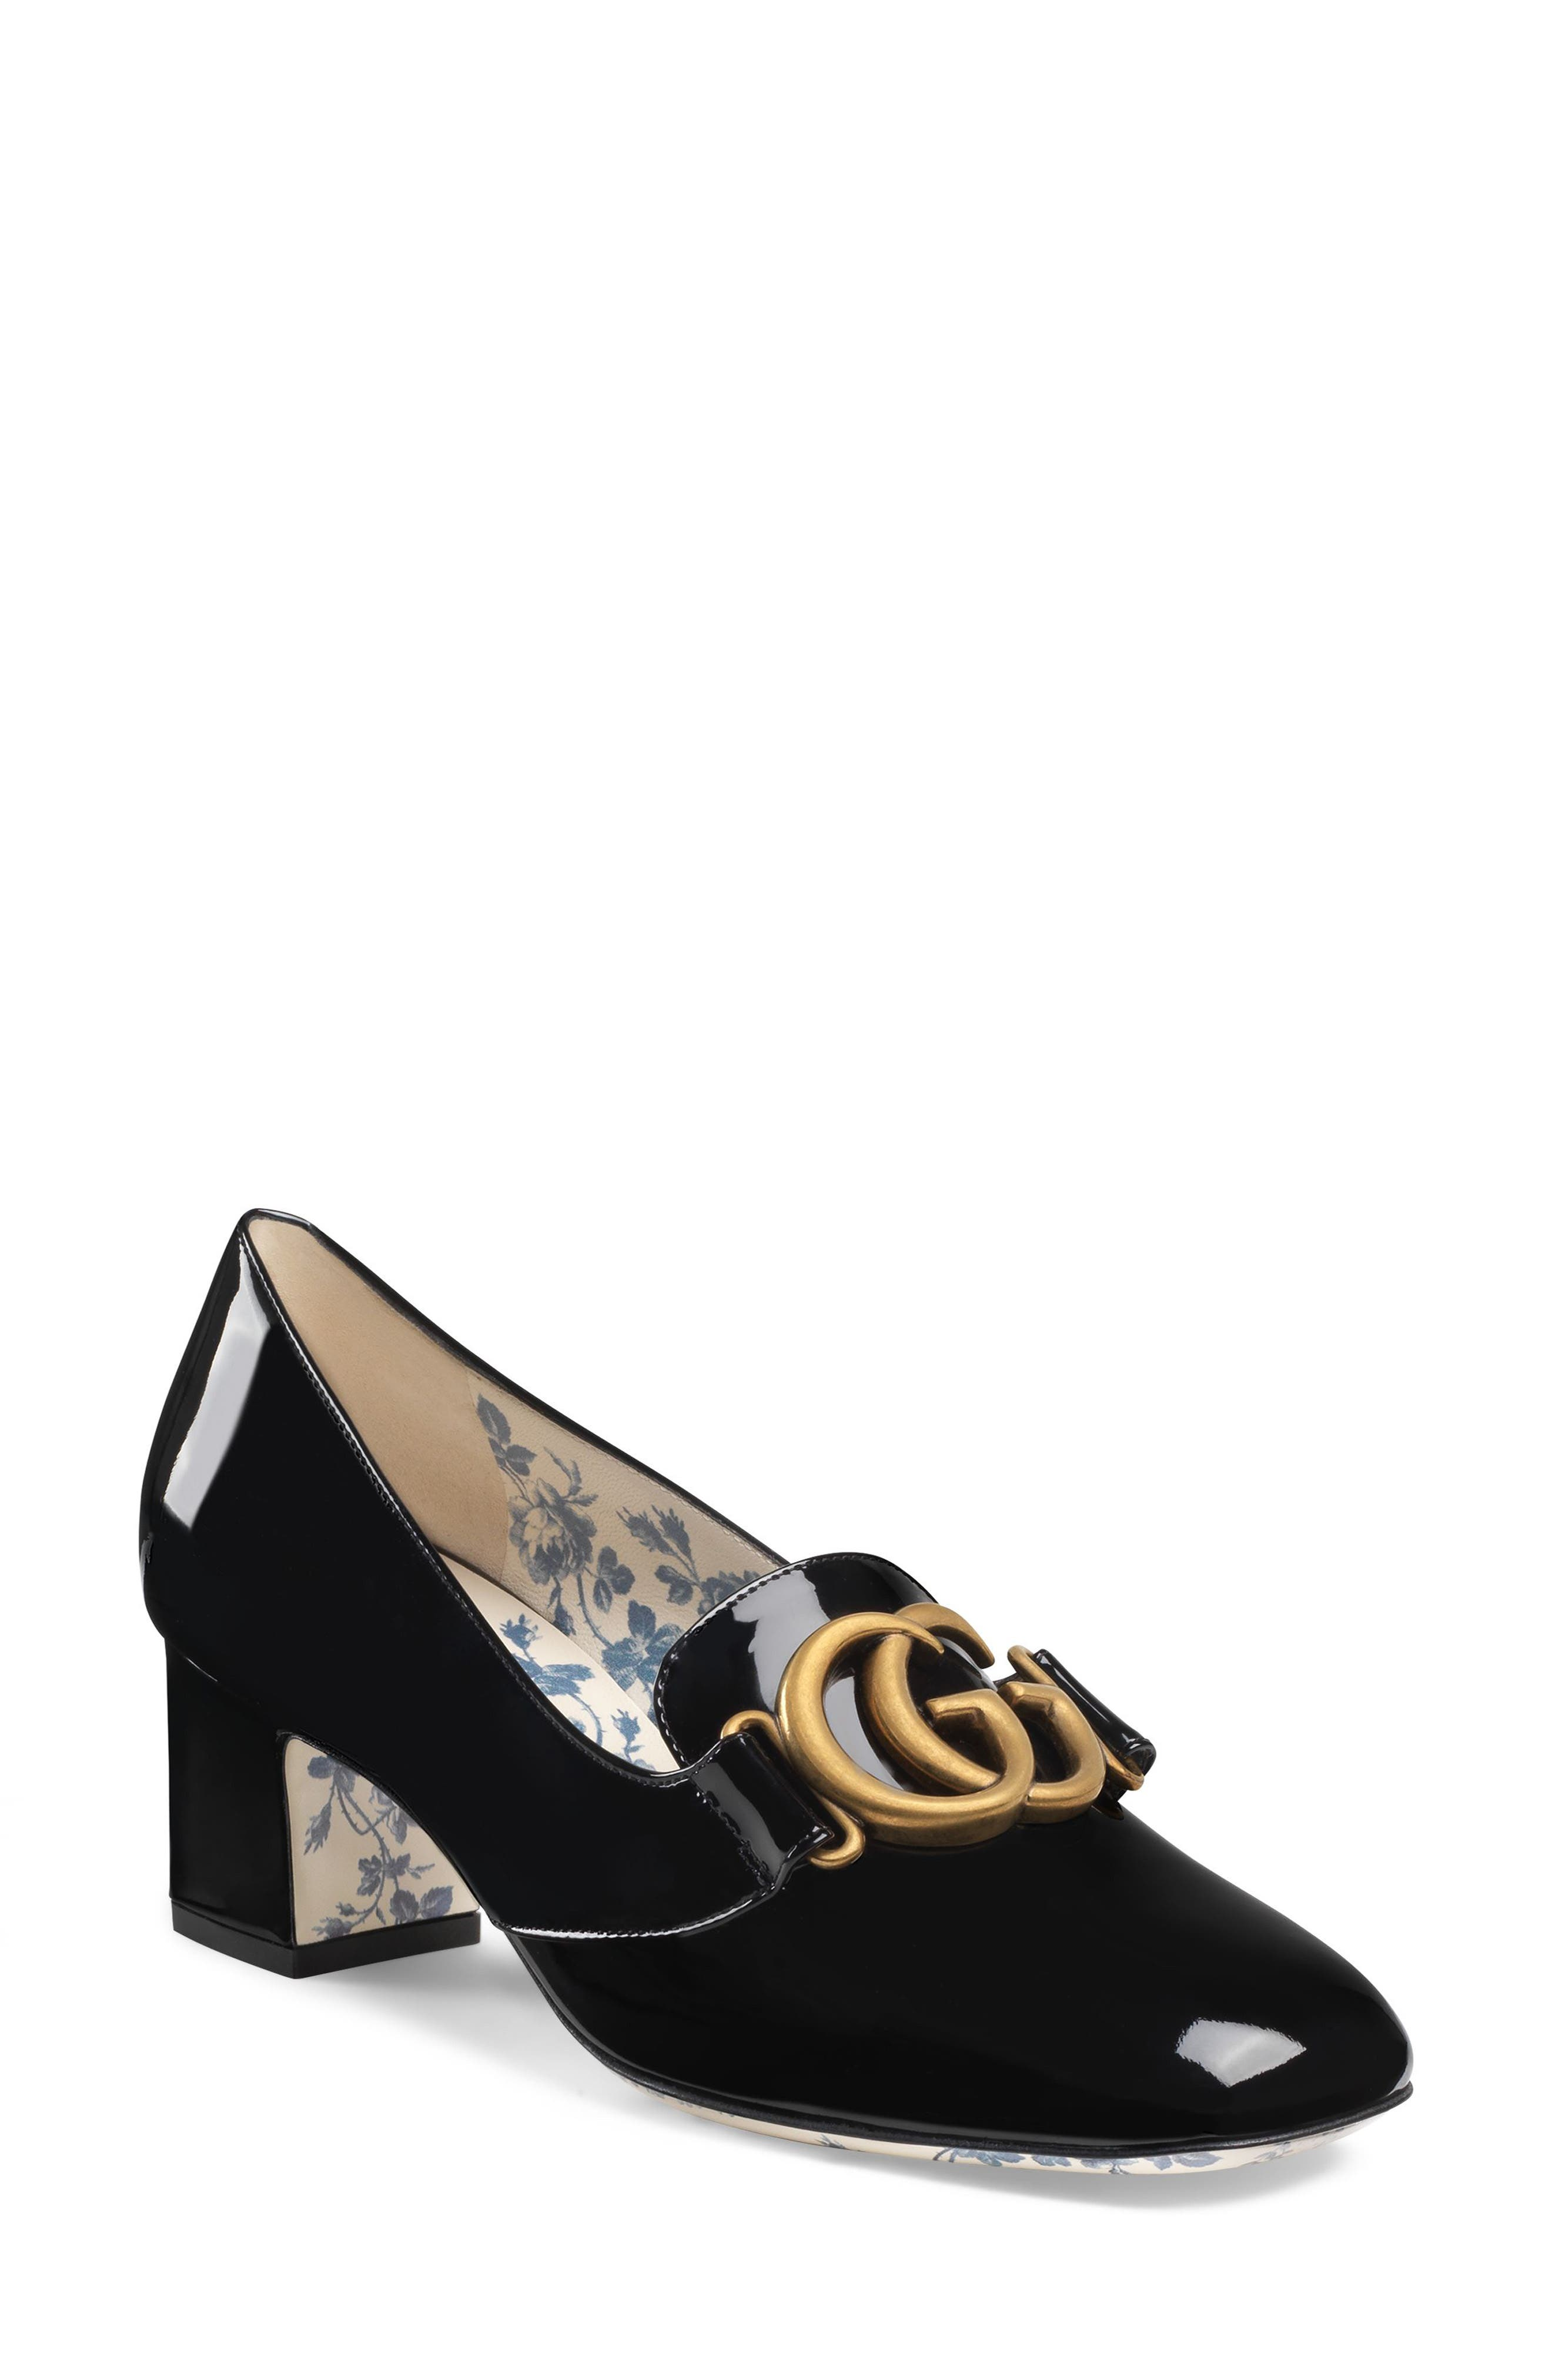 Gucci Victoire Loafer Pump (Women)